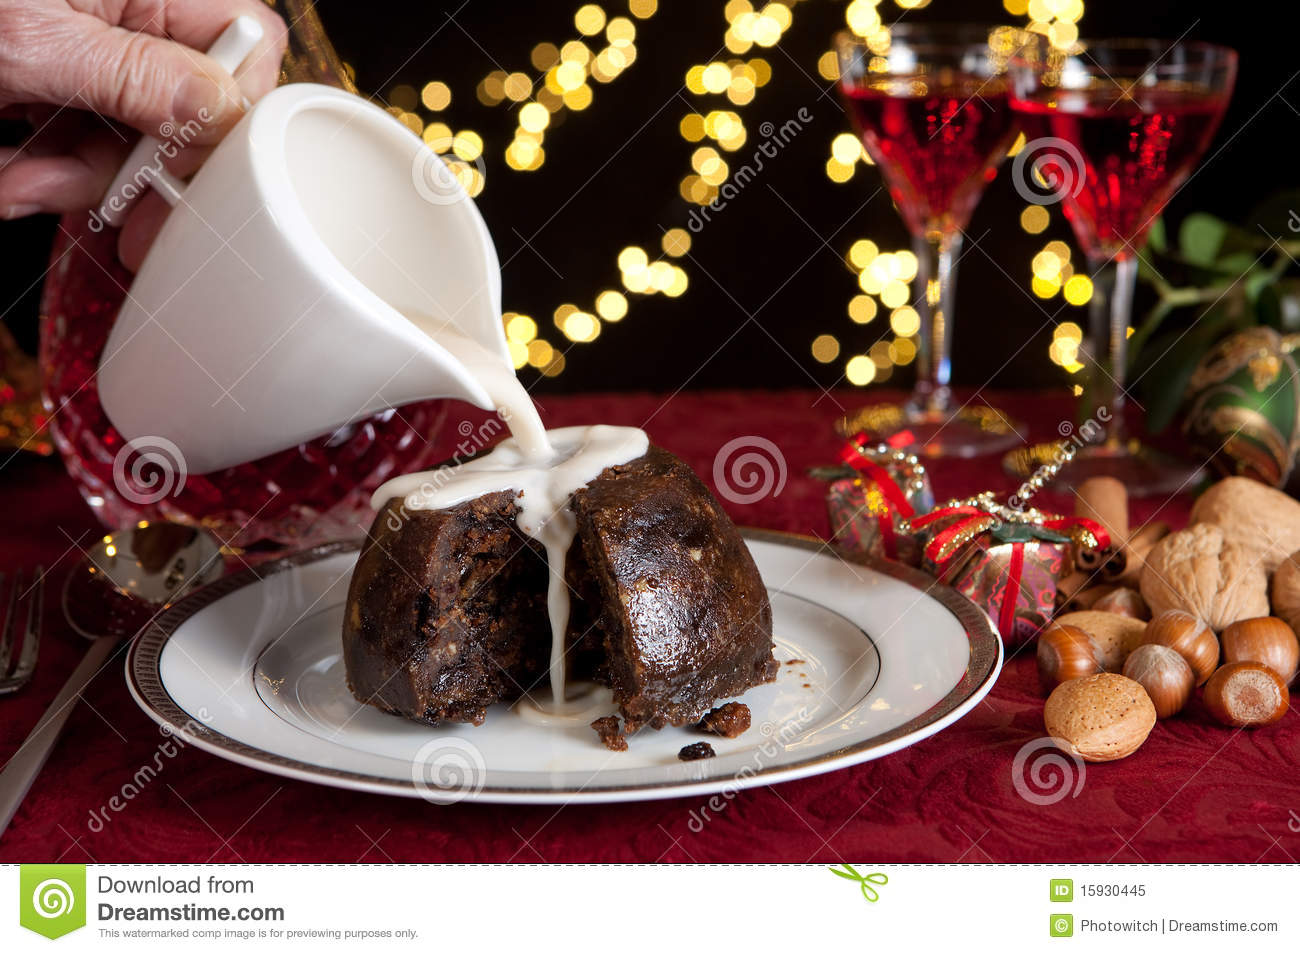 Cream on a christmas pudding royalty free stock photo for Xmas pudding